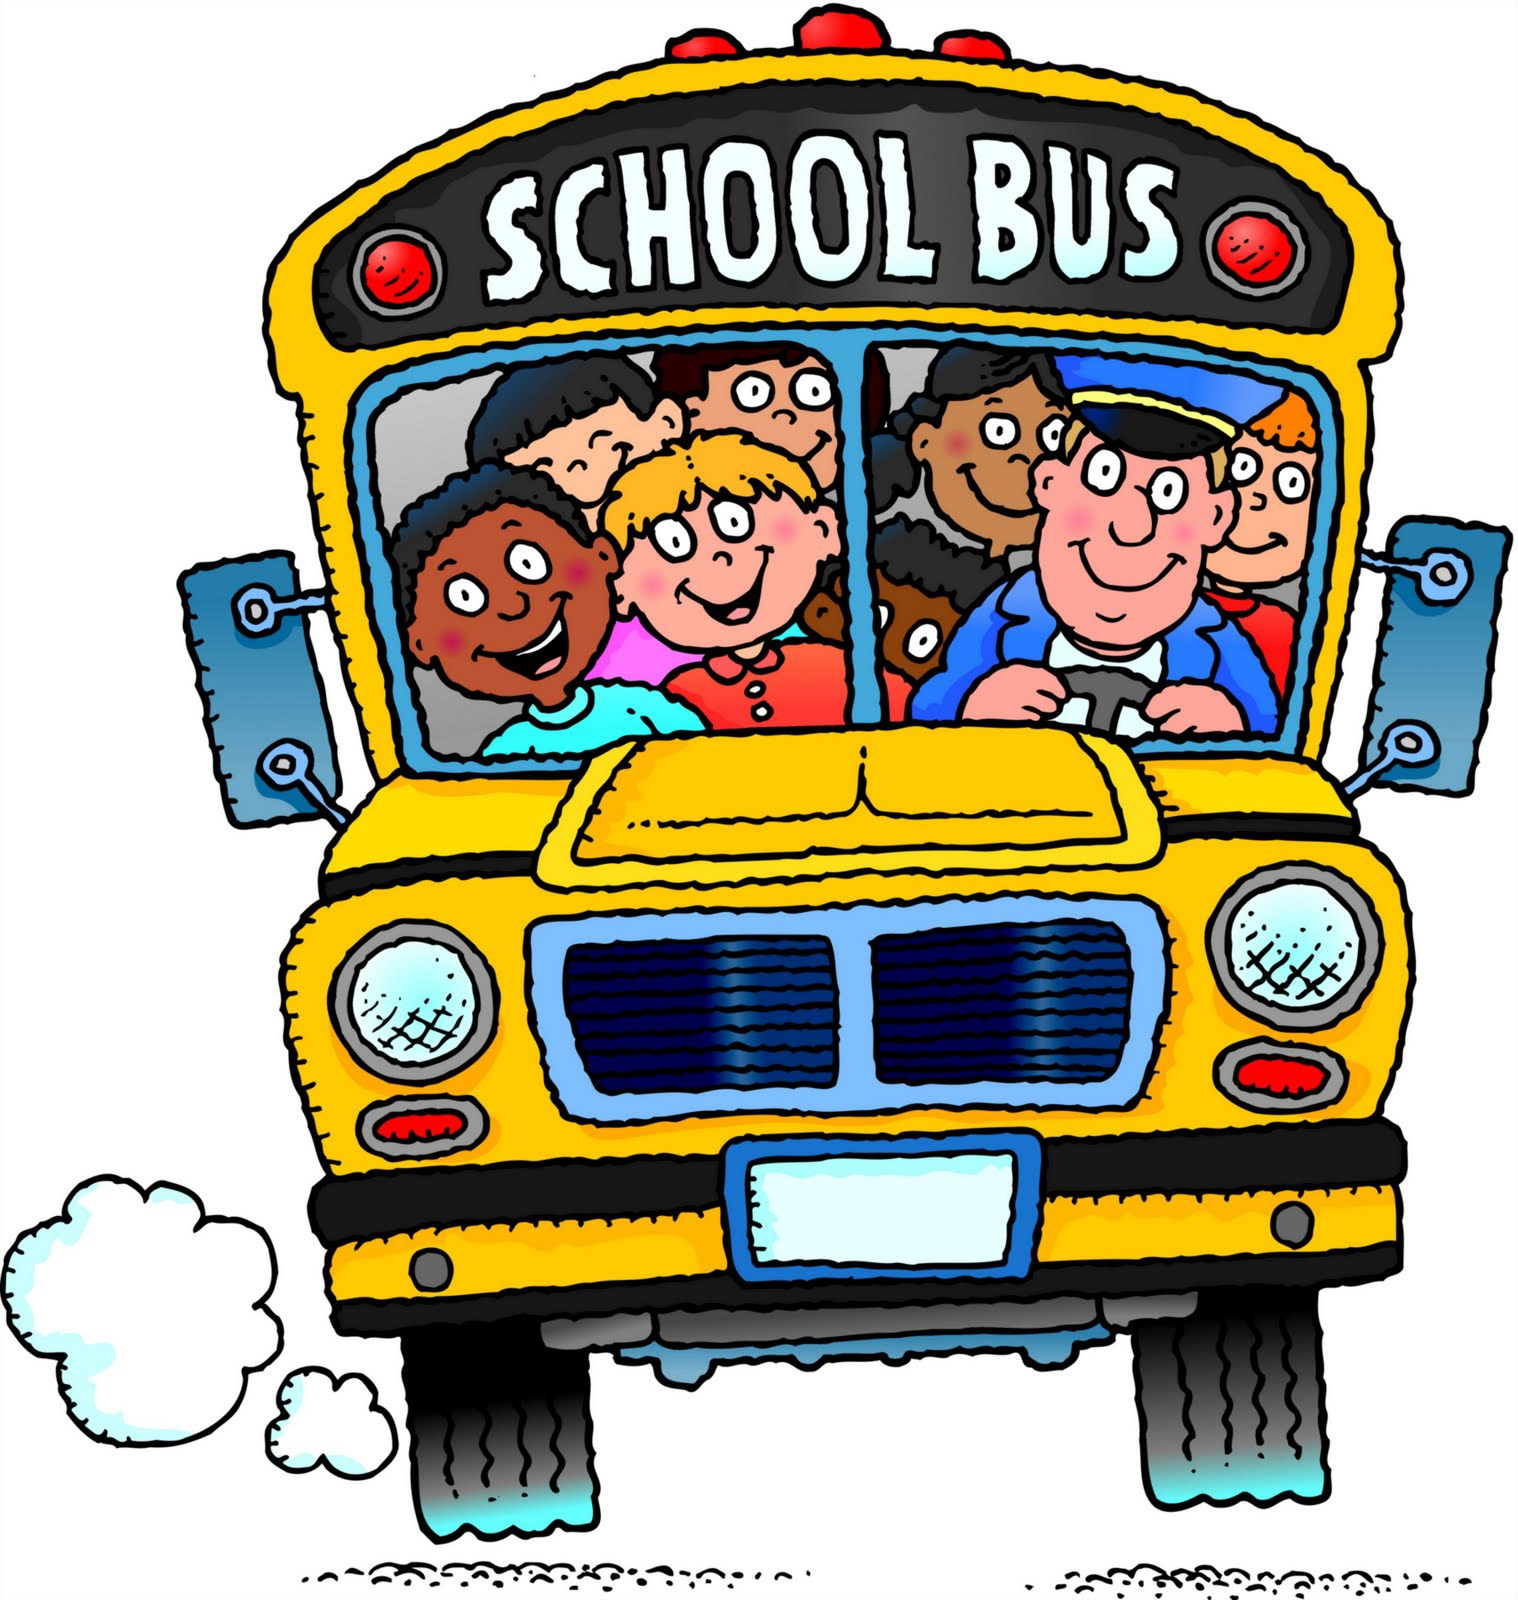 school bus clipart for kids at getdrawings com free for personal rh getdrawings com School Bus Clip Art Black and White Yellow School Bus Clip Art